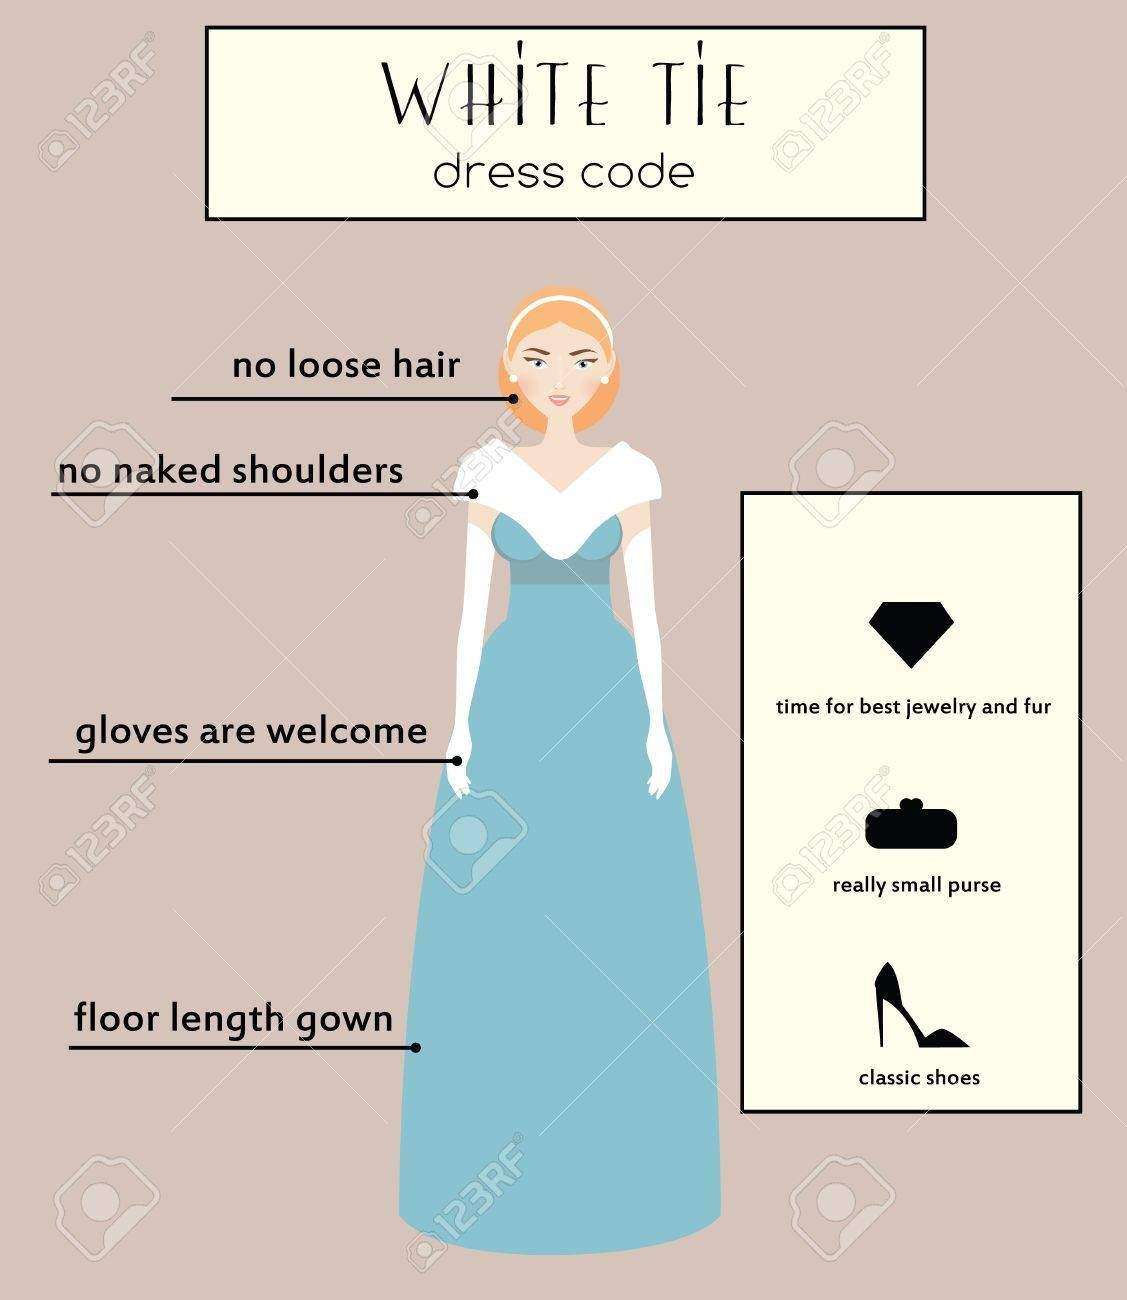 Image Result For Women Dresses Infographics Dress Codes White Tie Dress Code Dress Code For Women